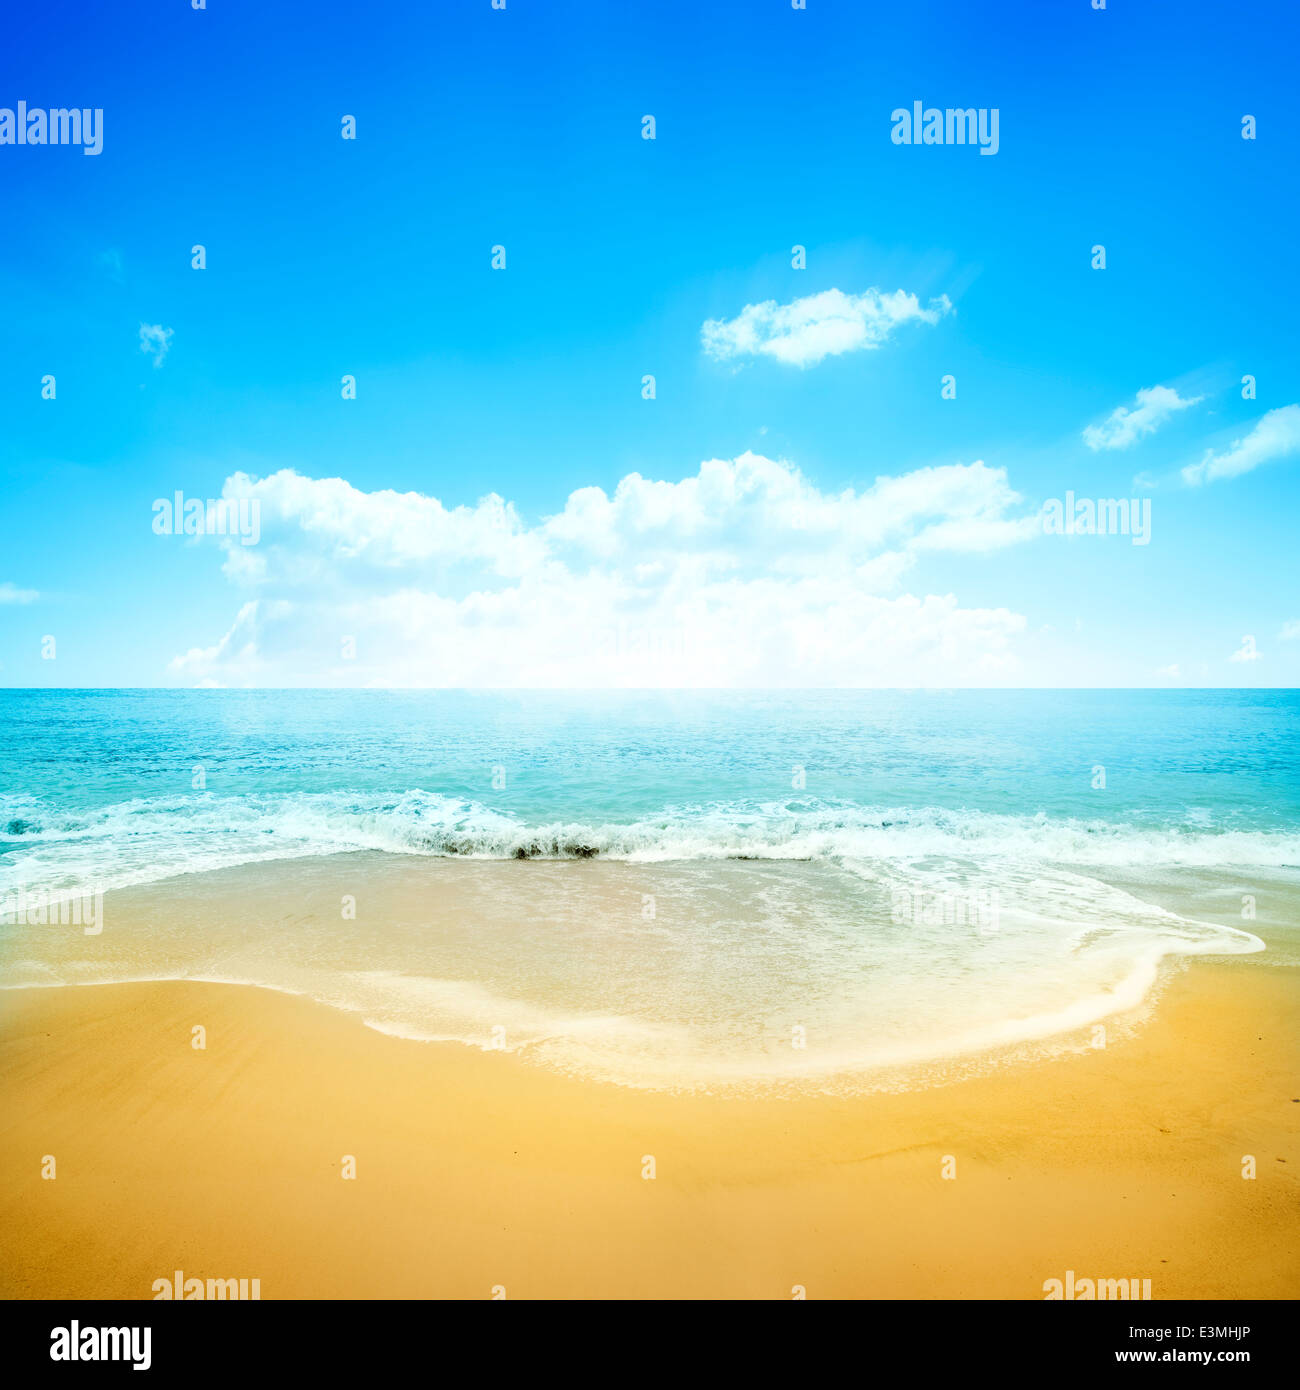 A golden sand beach and clear blue sky. Summer holiday background. - Stock Image